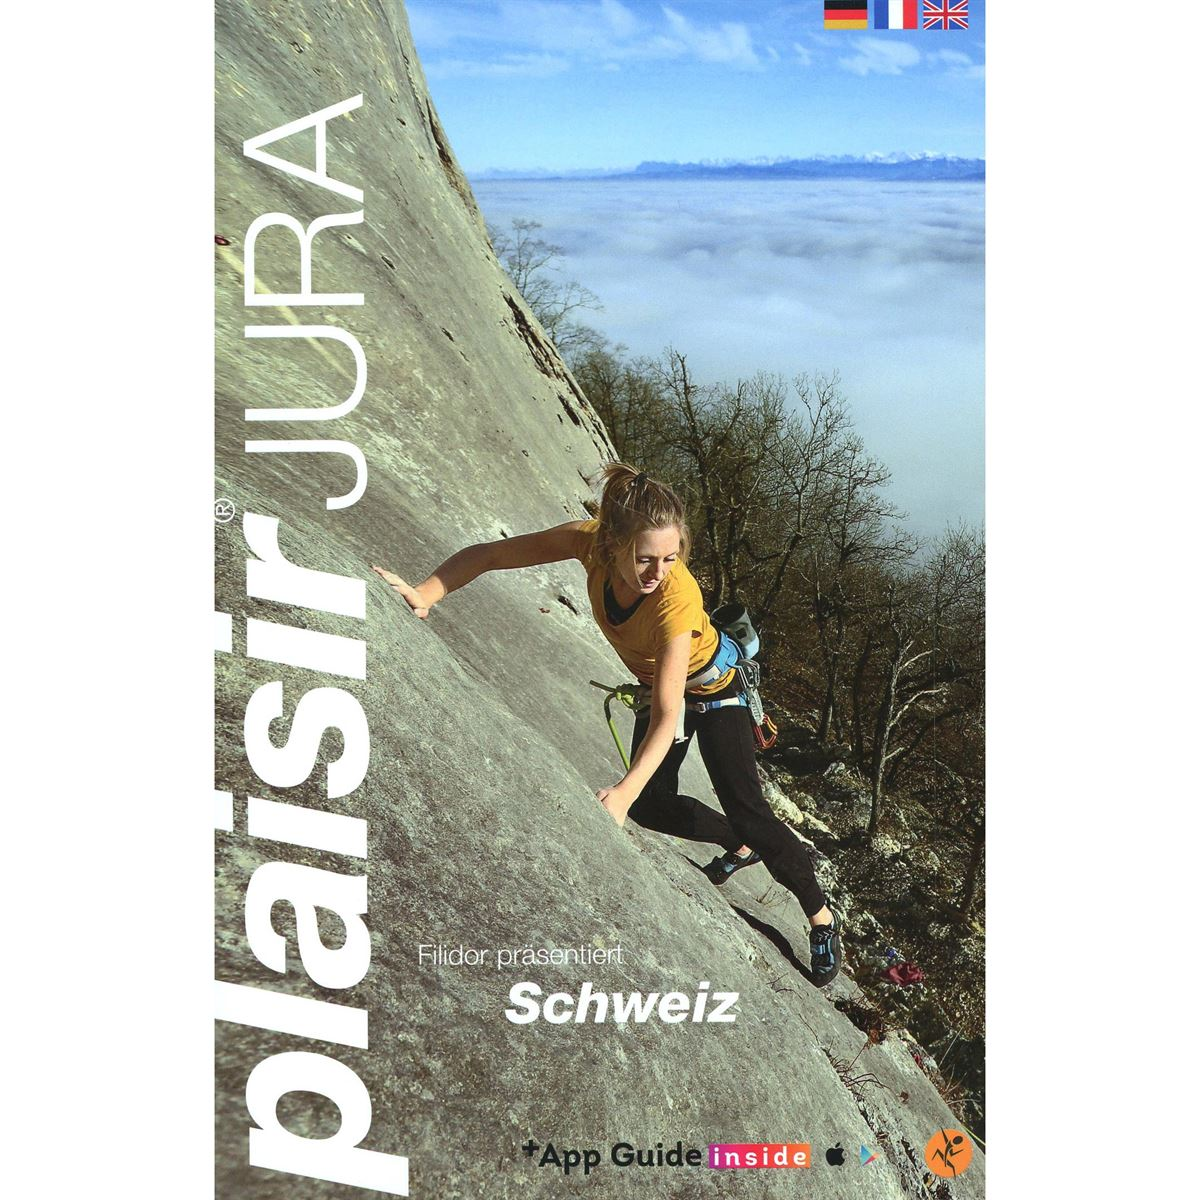 Swiss Plaisir Jura Needle Sports Ltd